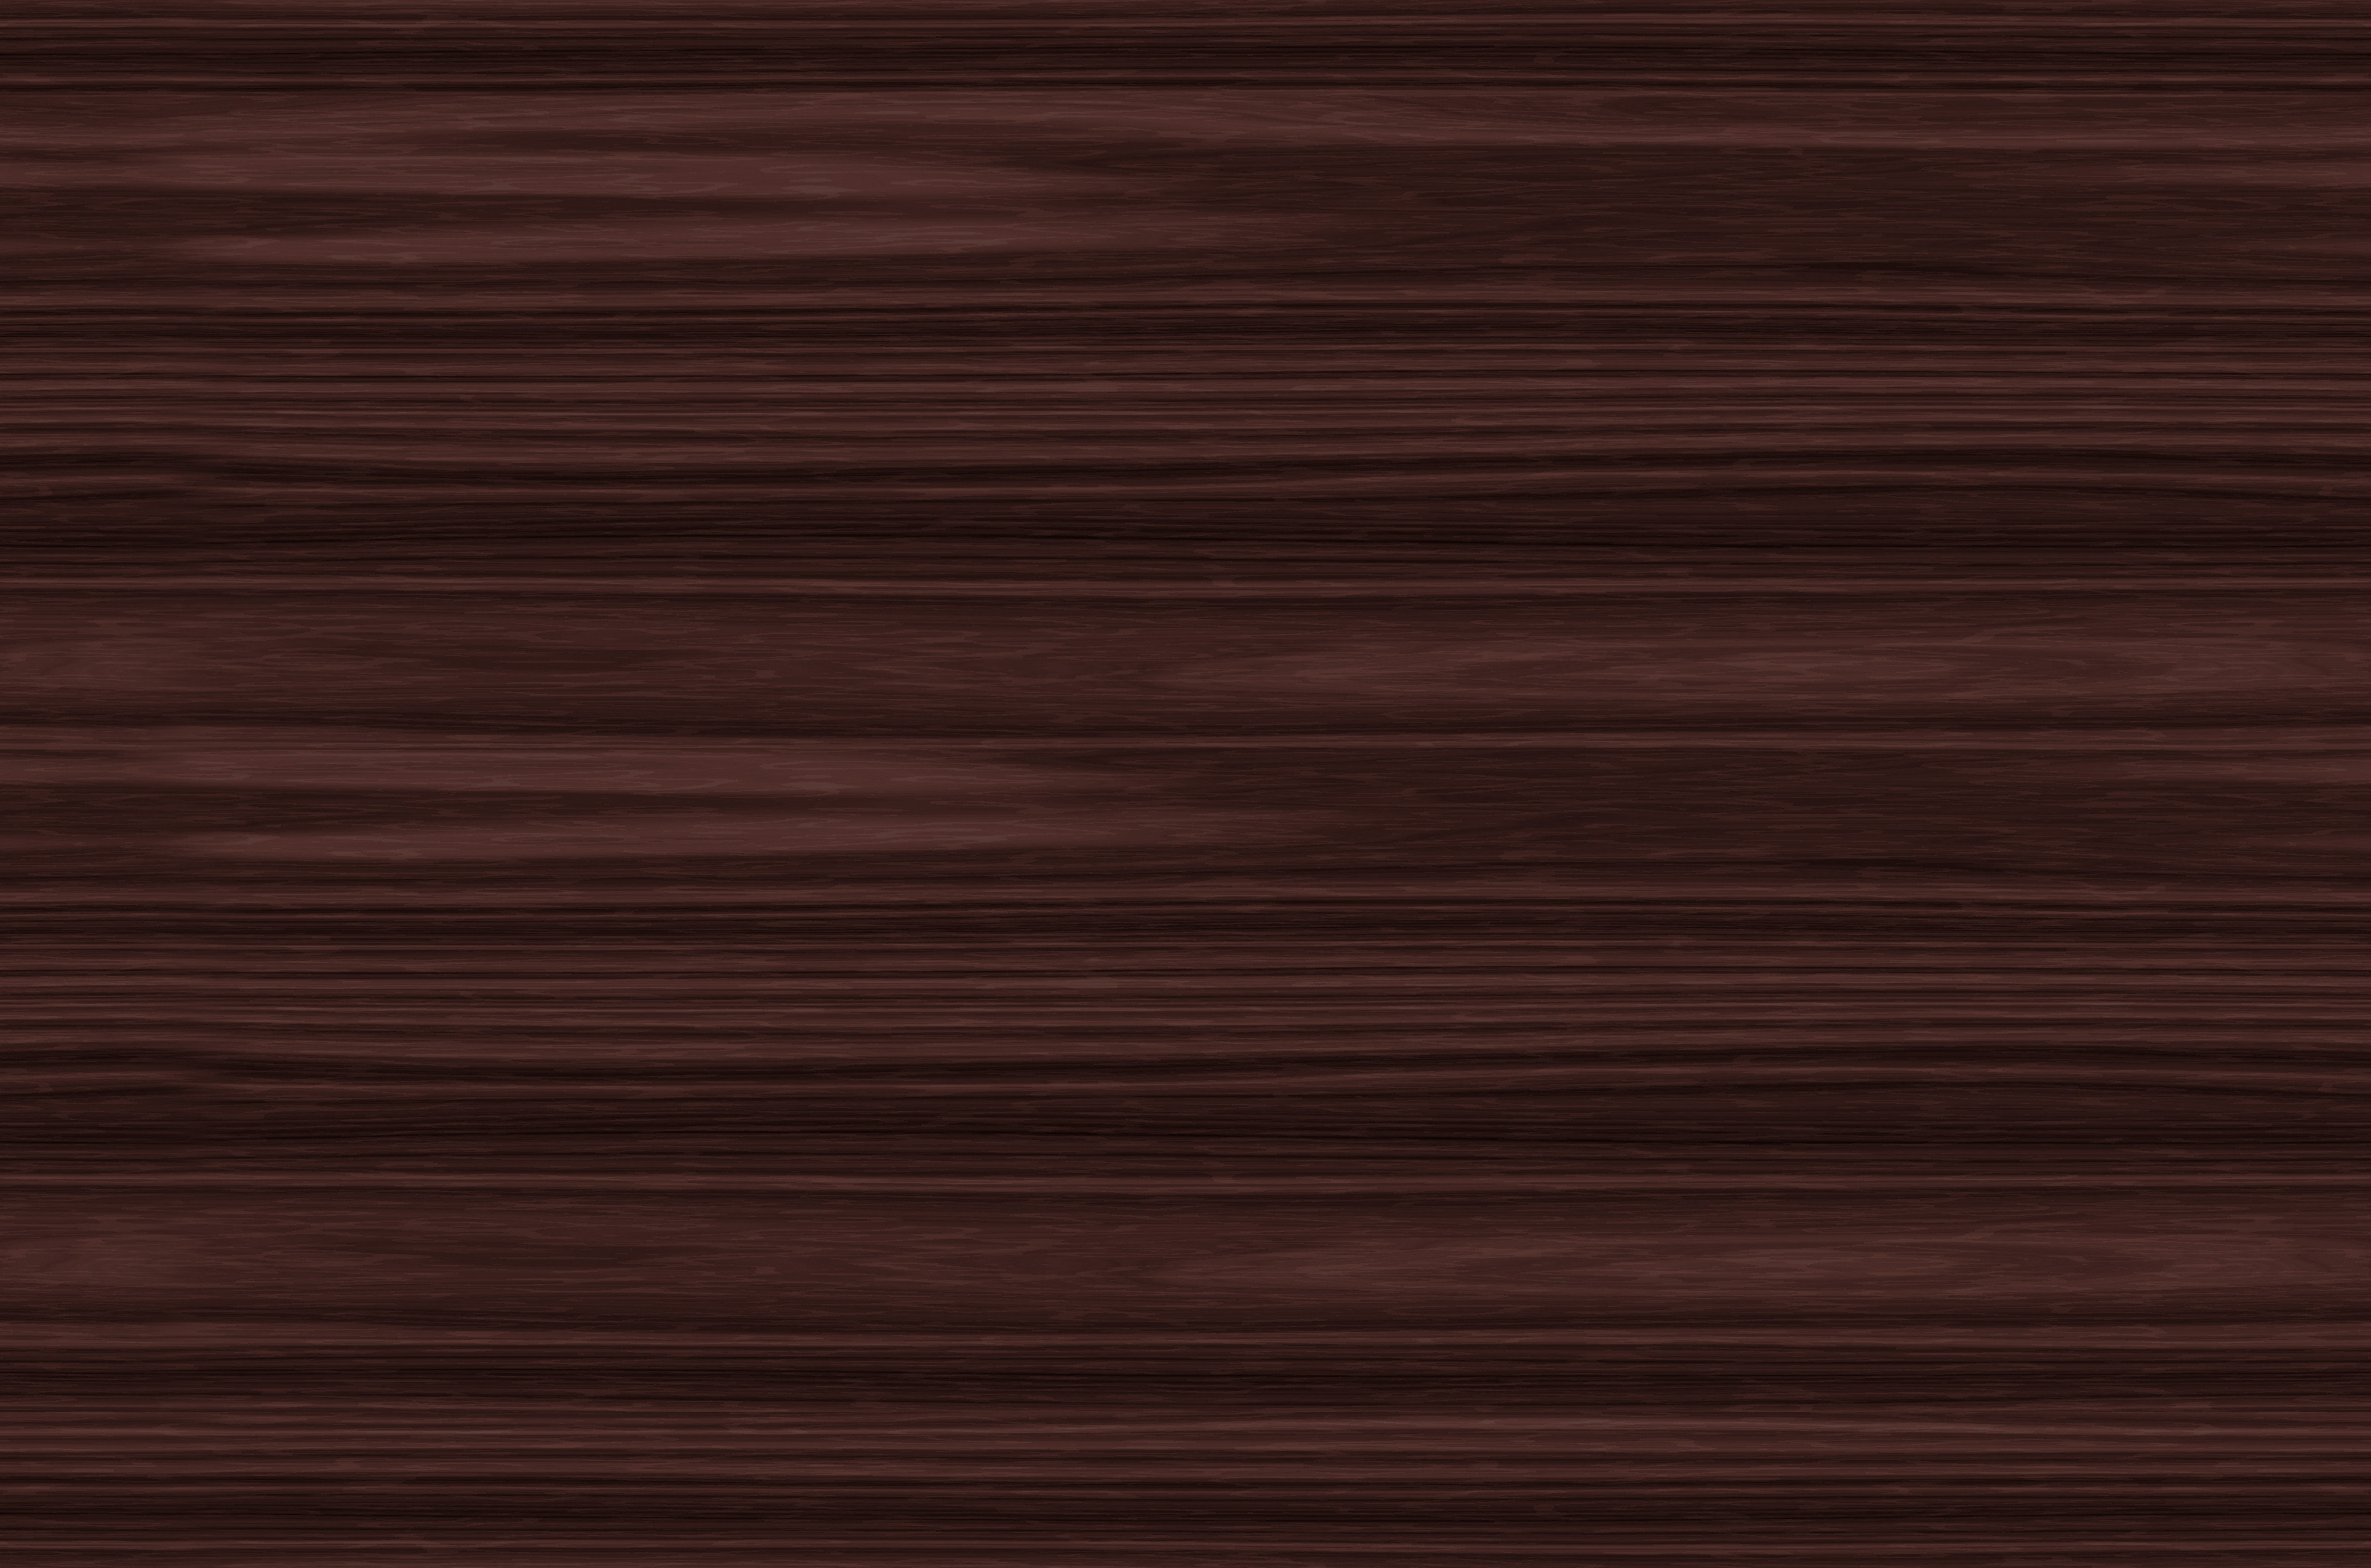 Dark brown fine wood texture download textures 3096x2048